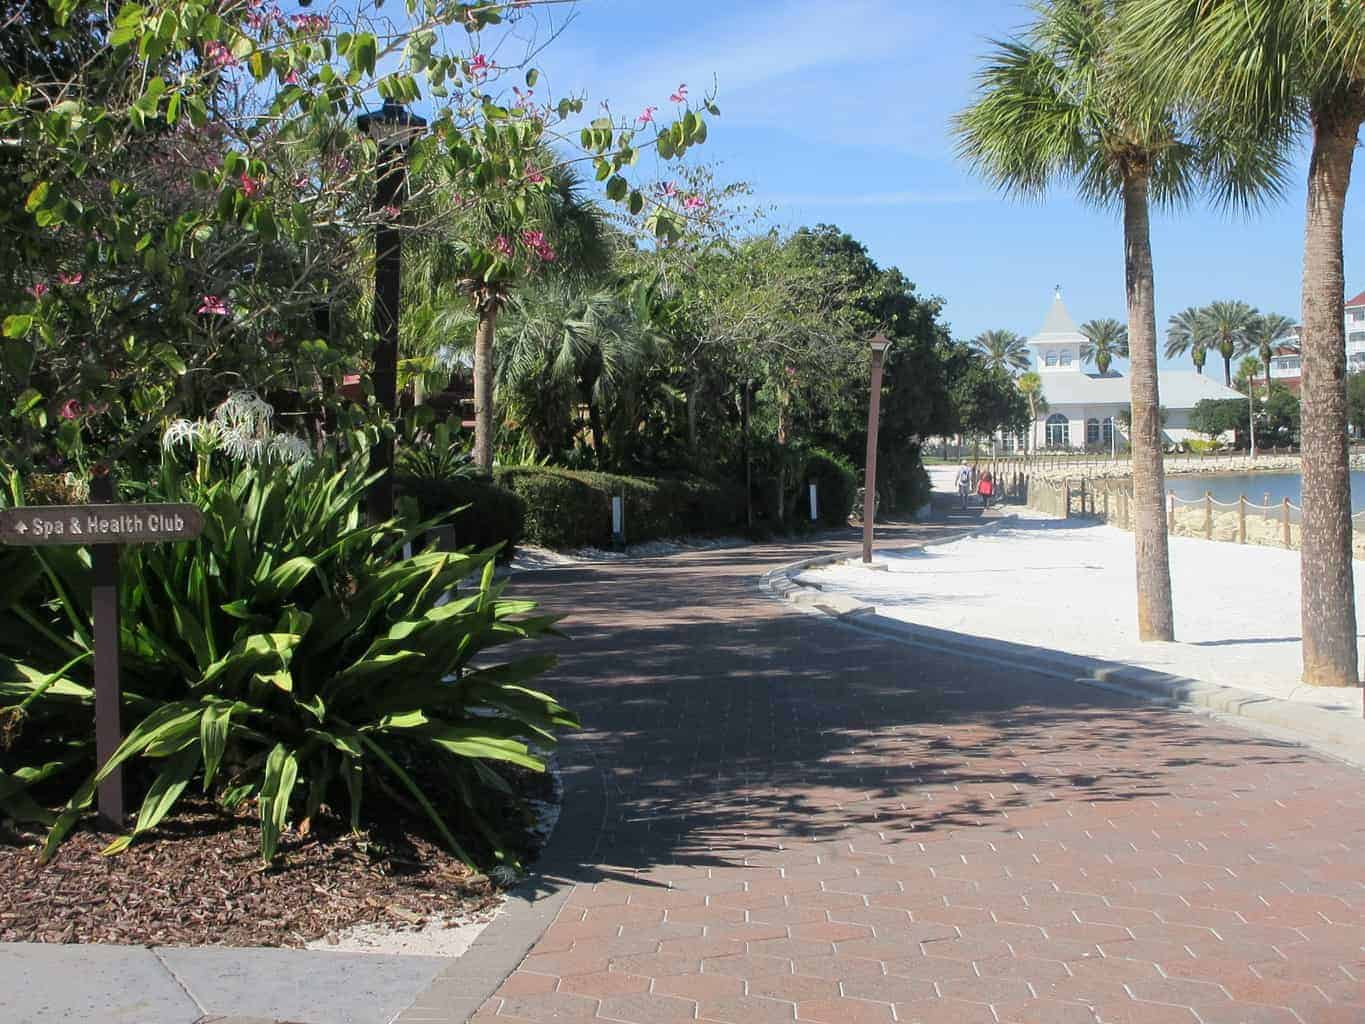 The Path Less Traveled: Walking from The Polynesian to The Grand Floridian